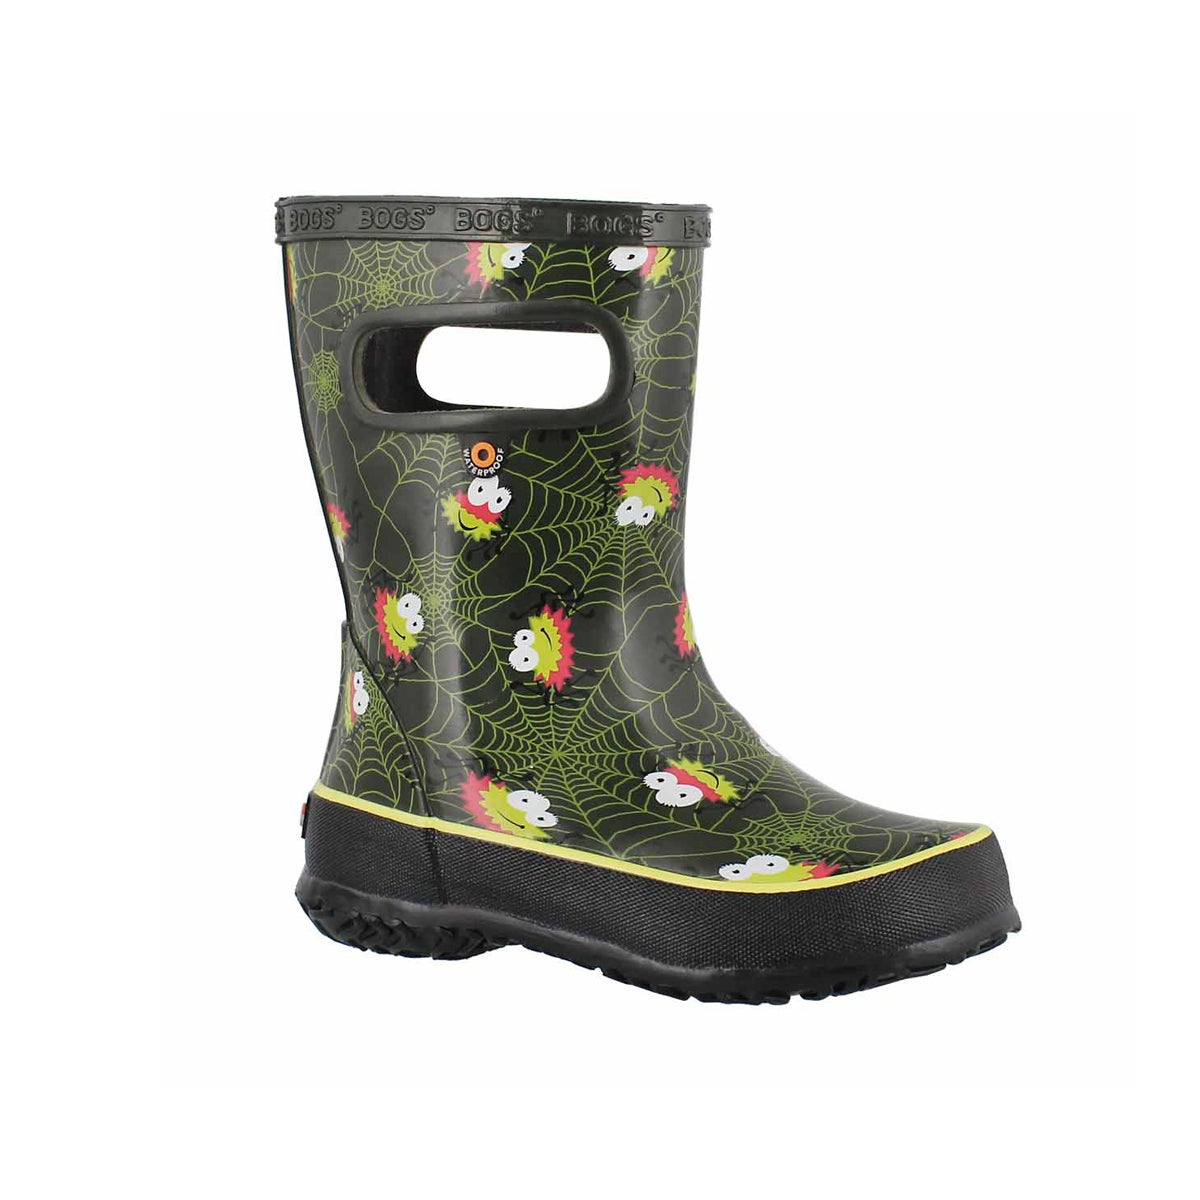 Inf-b Skipper Spiders grn mlti rain boot